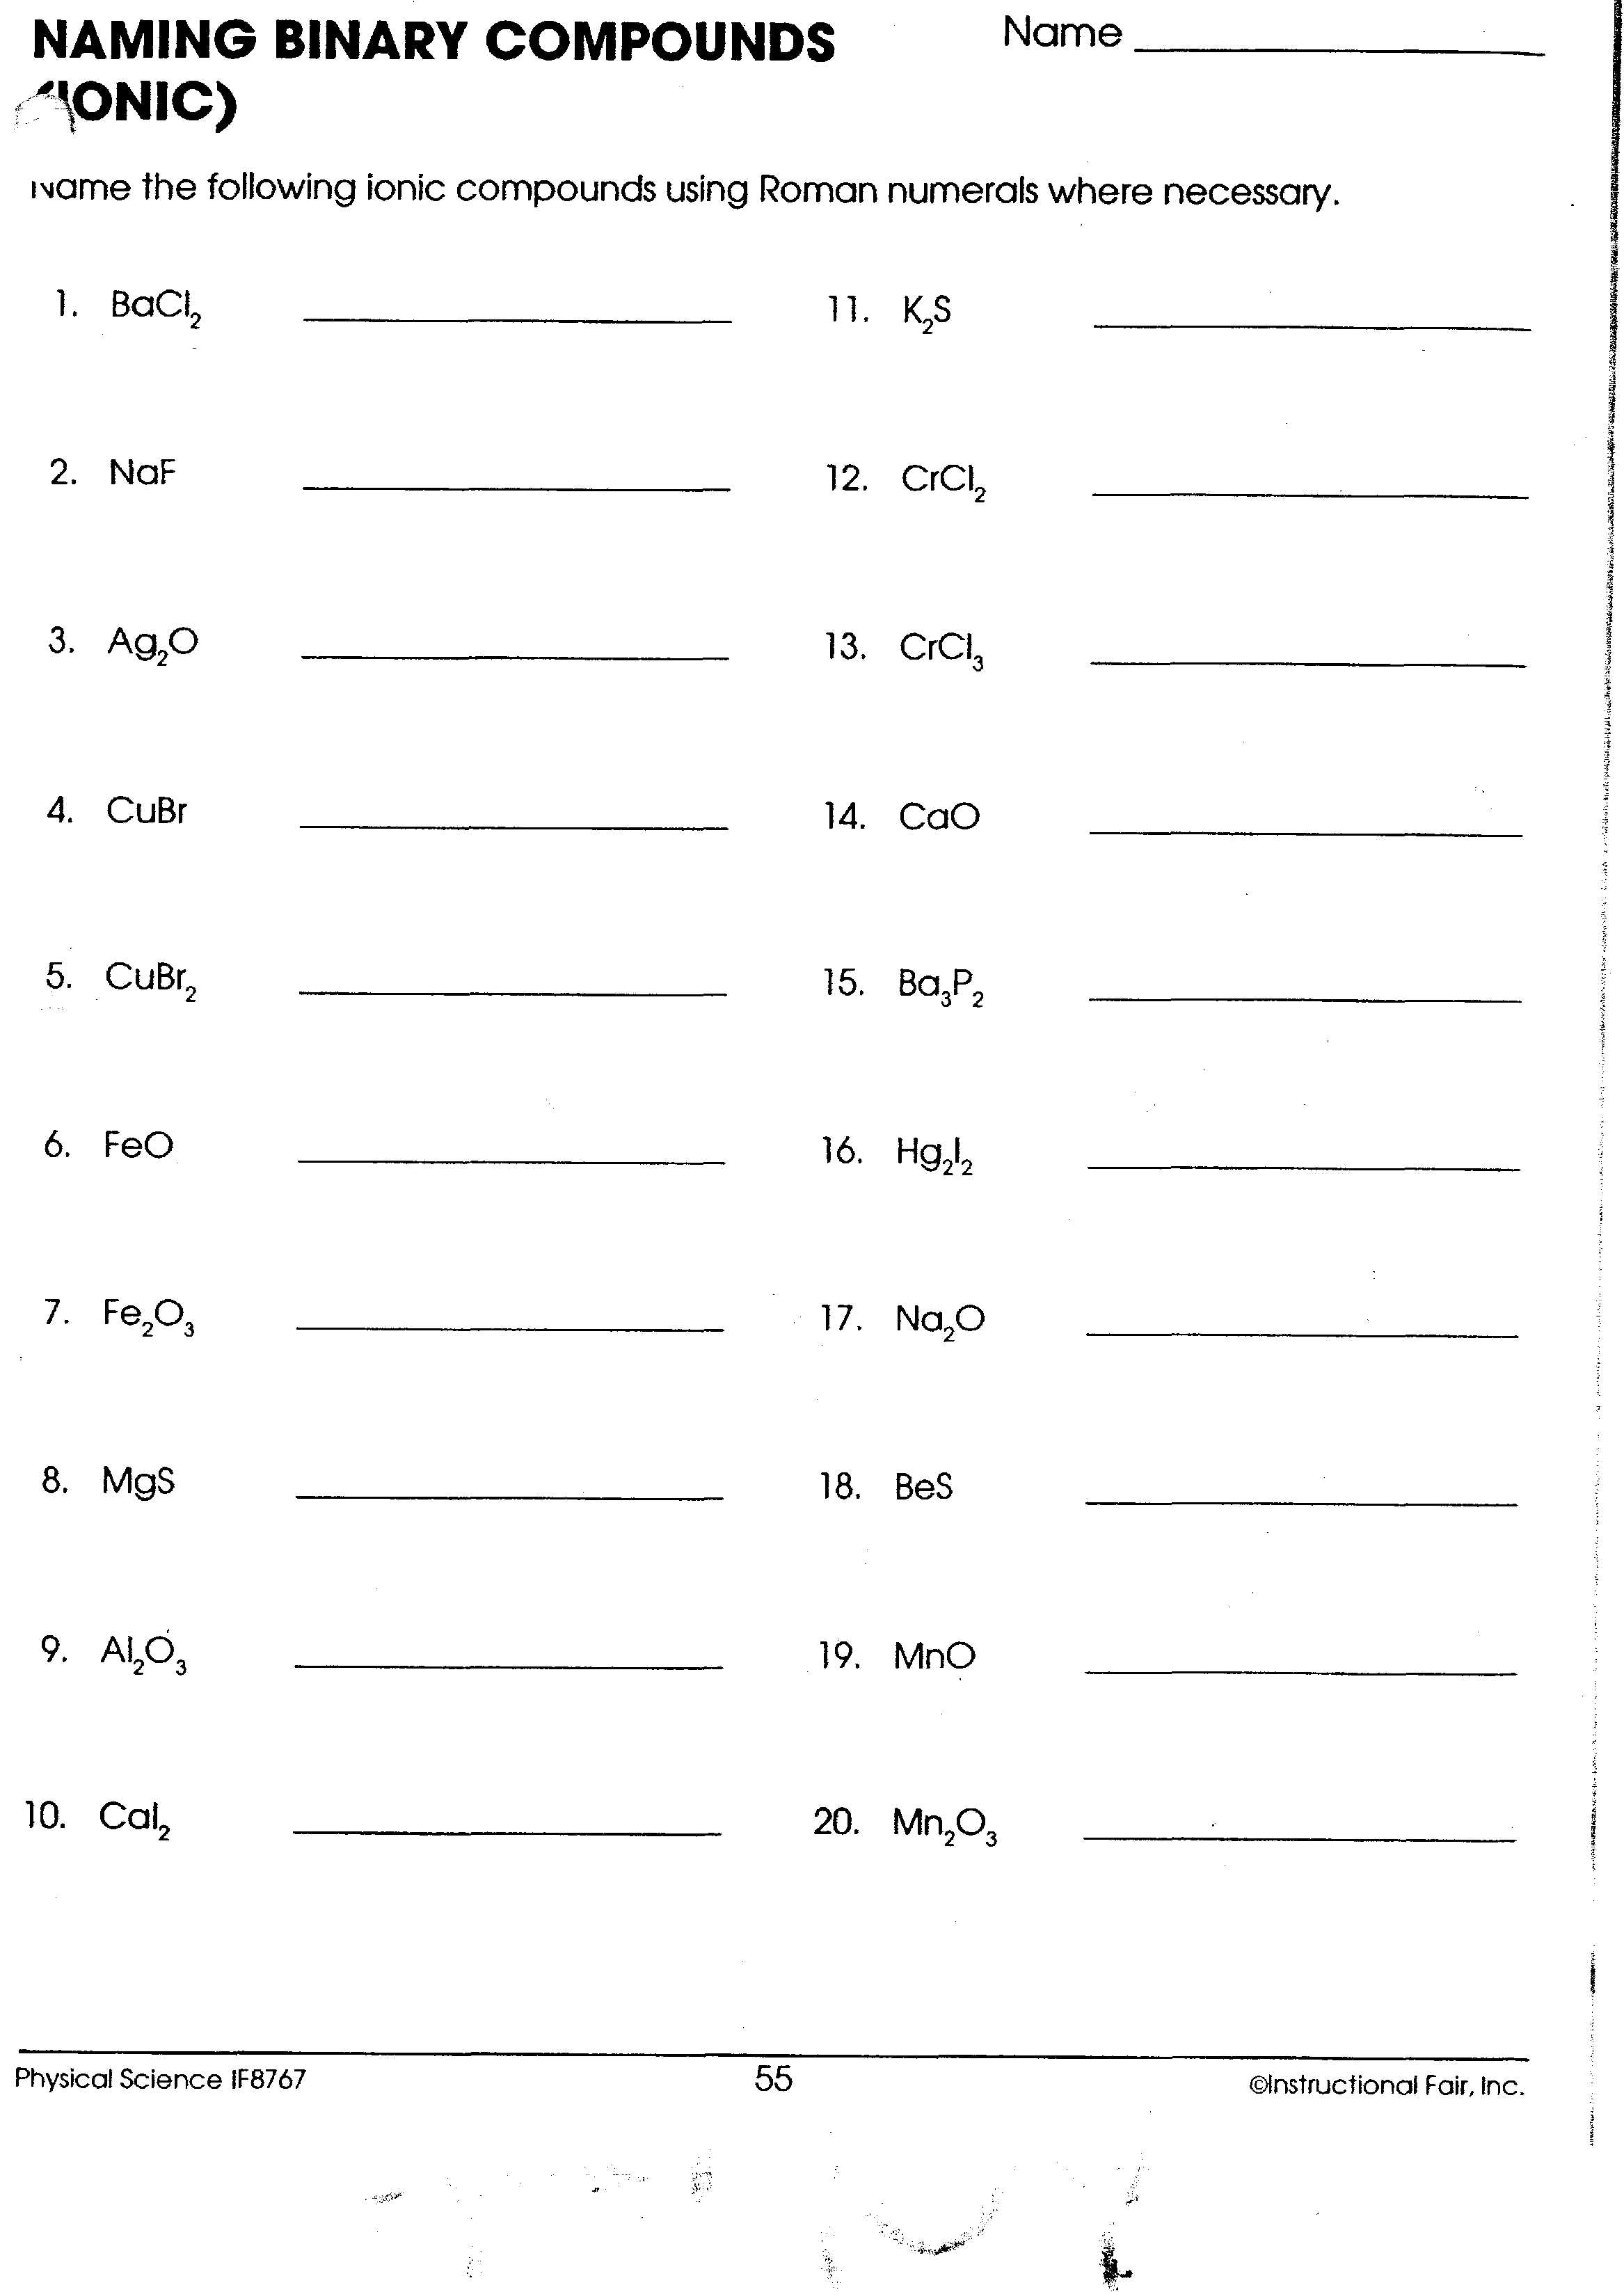 Ionic Compounds Worksheet With Answers Free Worksheets Library – Name Ionic Compounds Worksheet